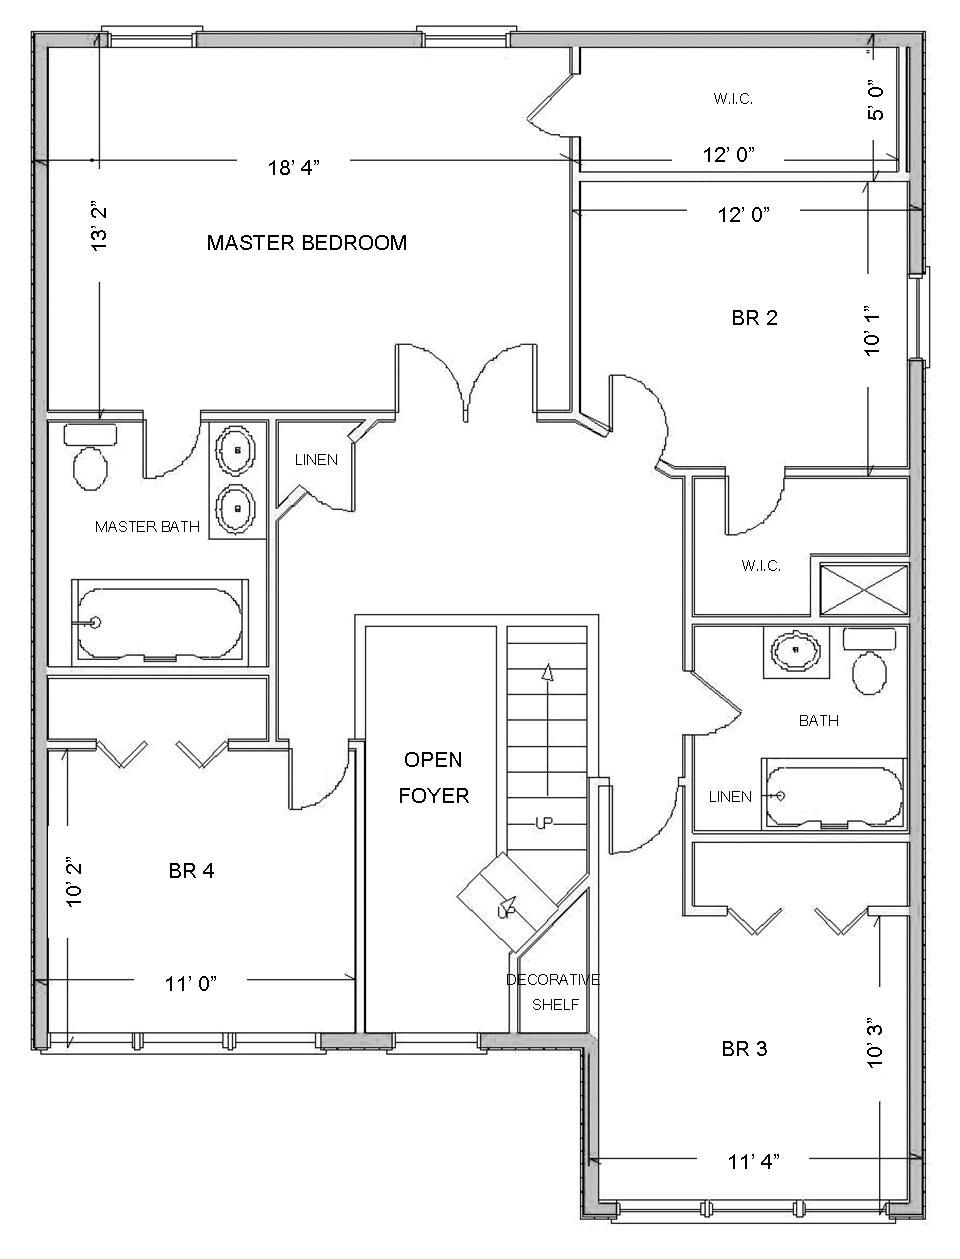 Attractive floor plans based true story with smart draw floor plan using white blank print displaying